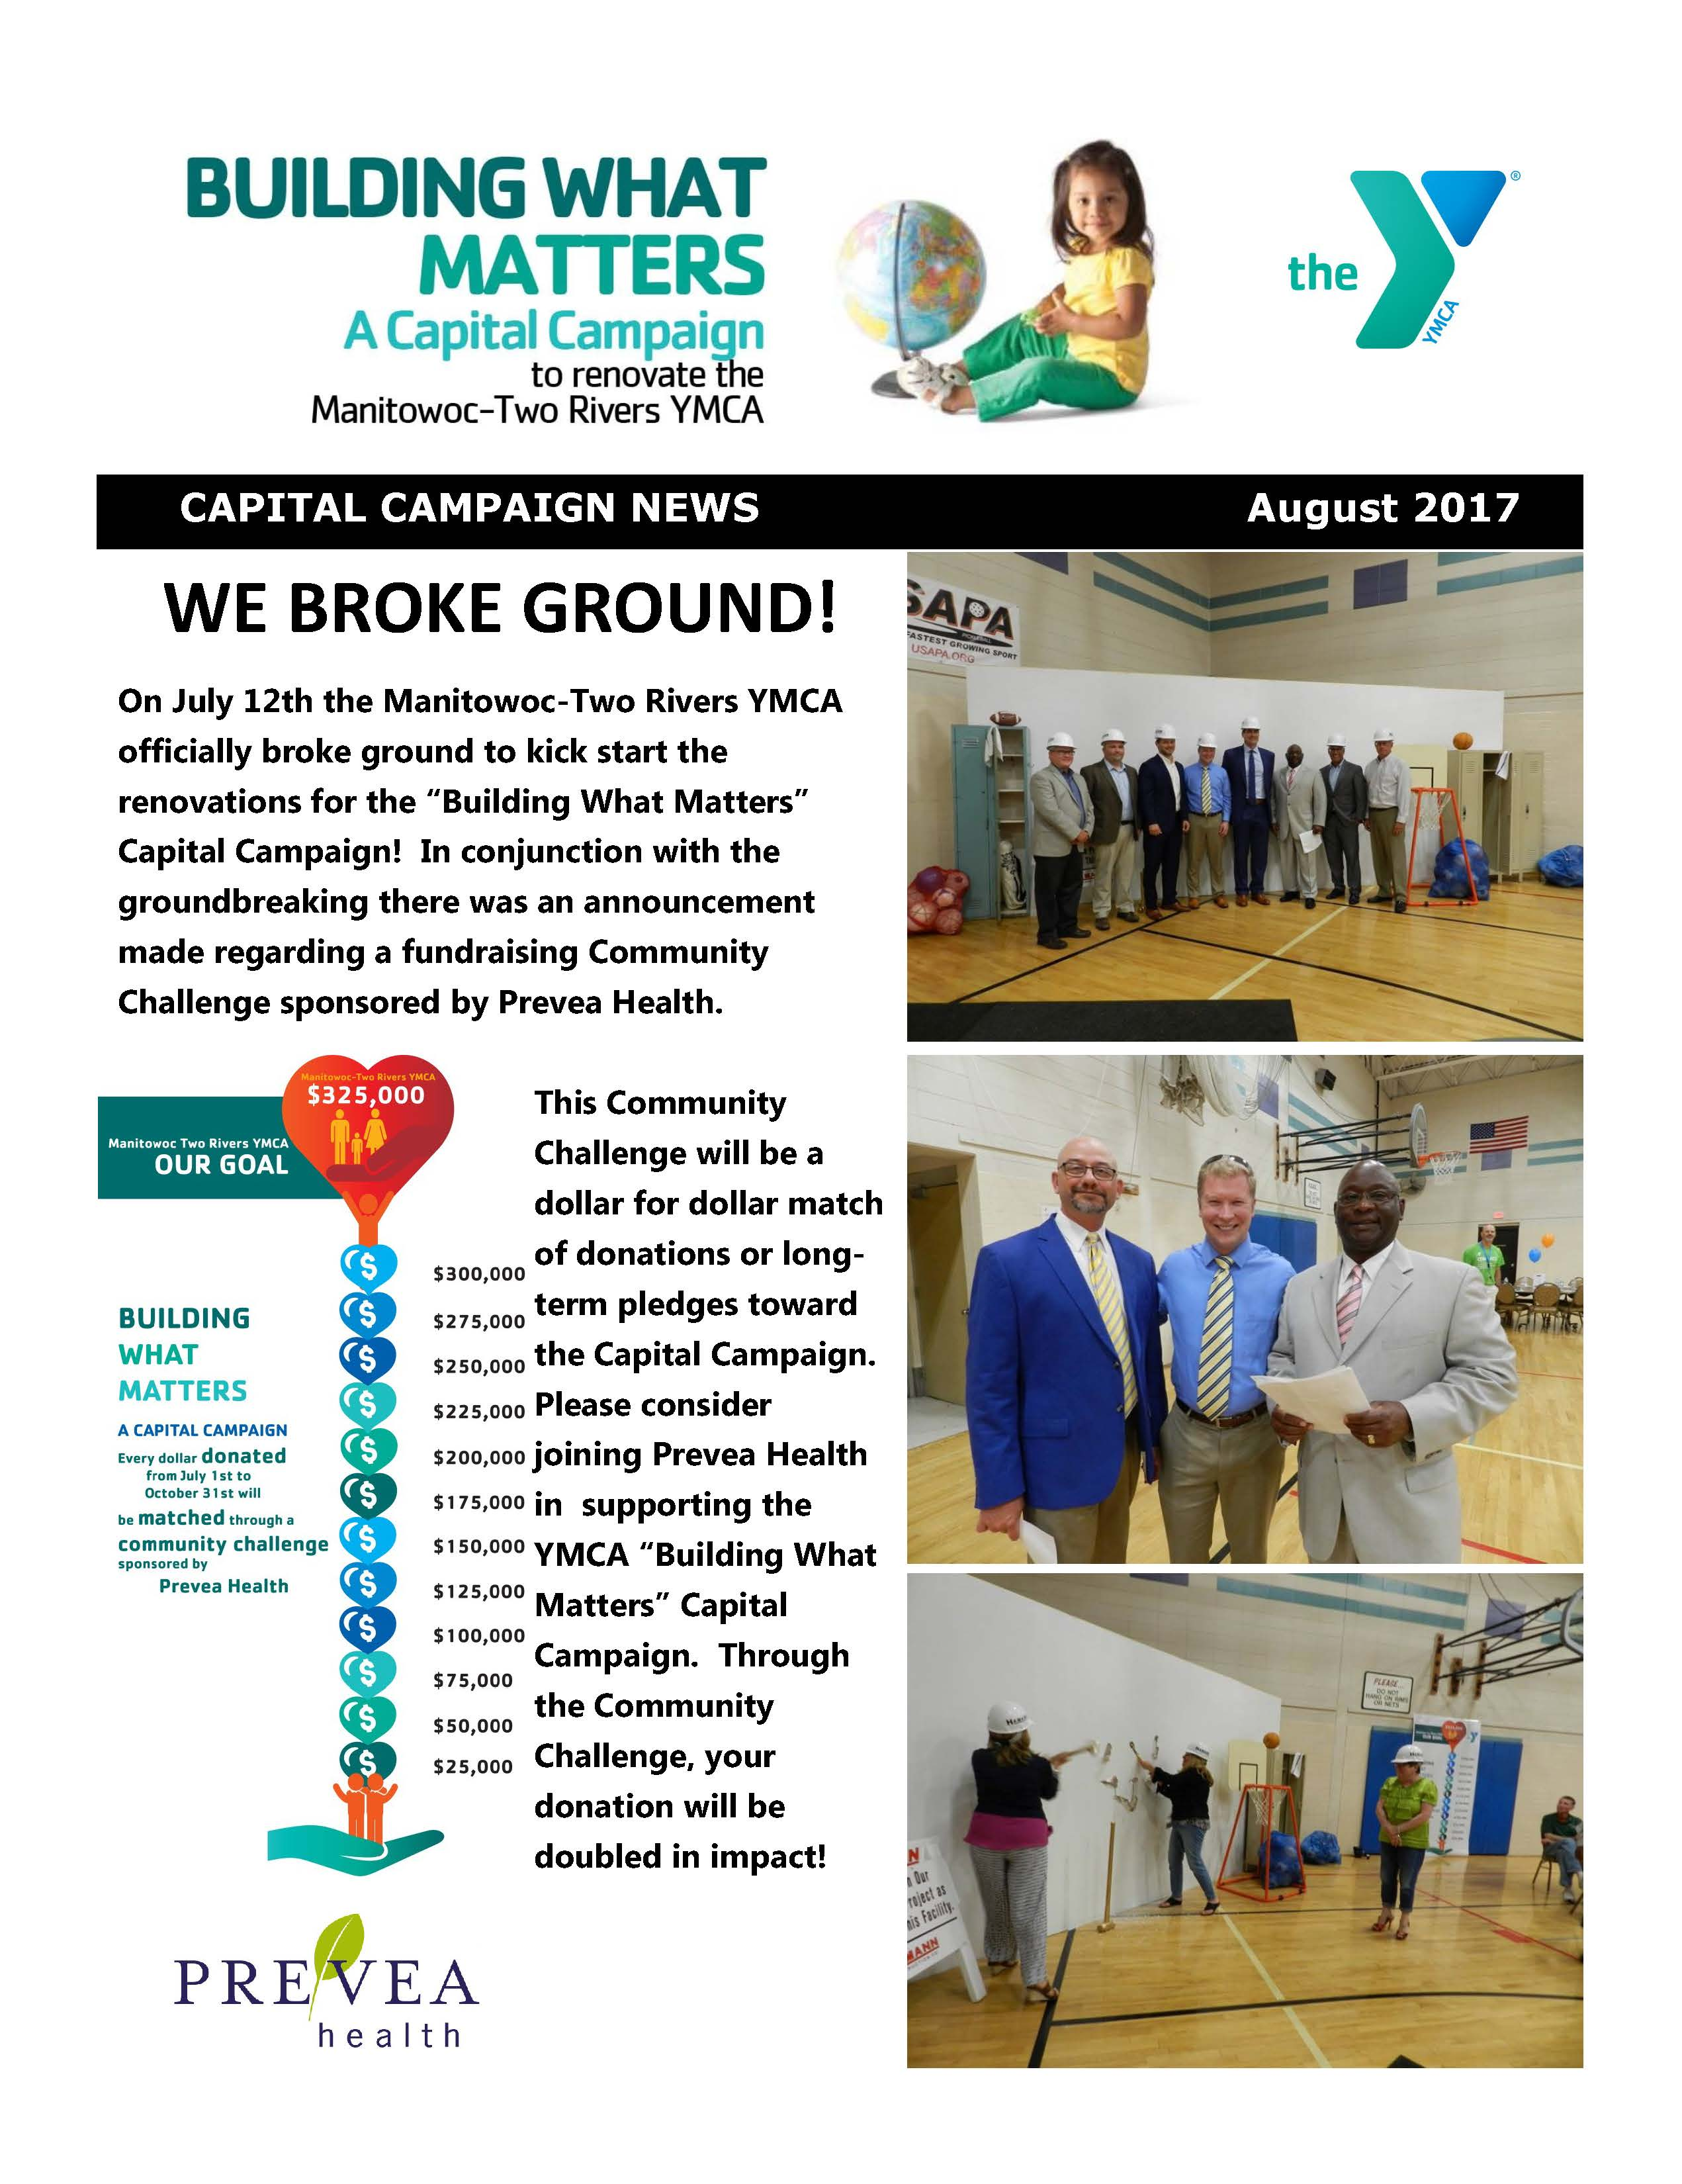 http://mtrymca.org/sites/mtrymca.org/assets/images/campaign/MTR-YMCA-2017-Capital-Campaign-Newsletter-Aug-2017_Page_1.jpg